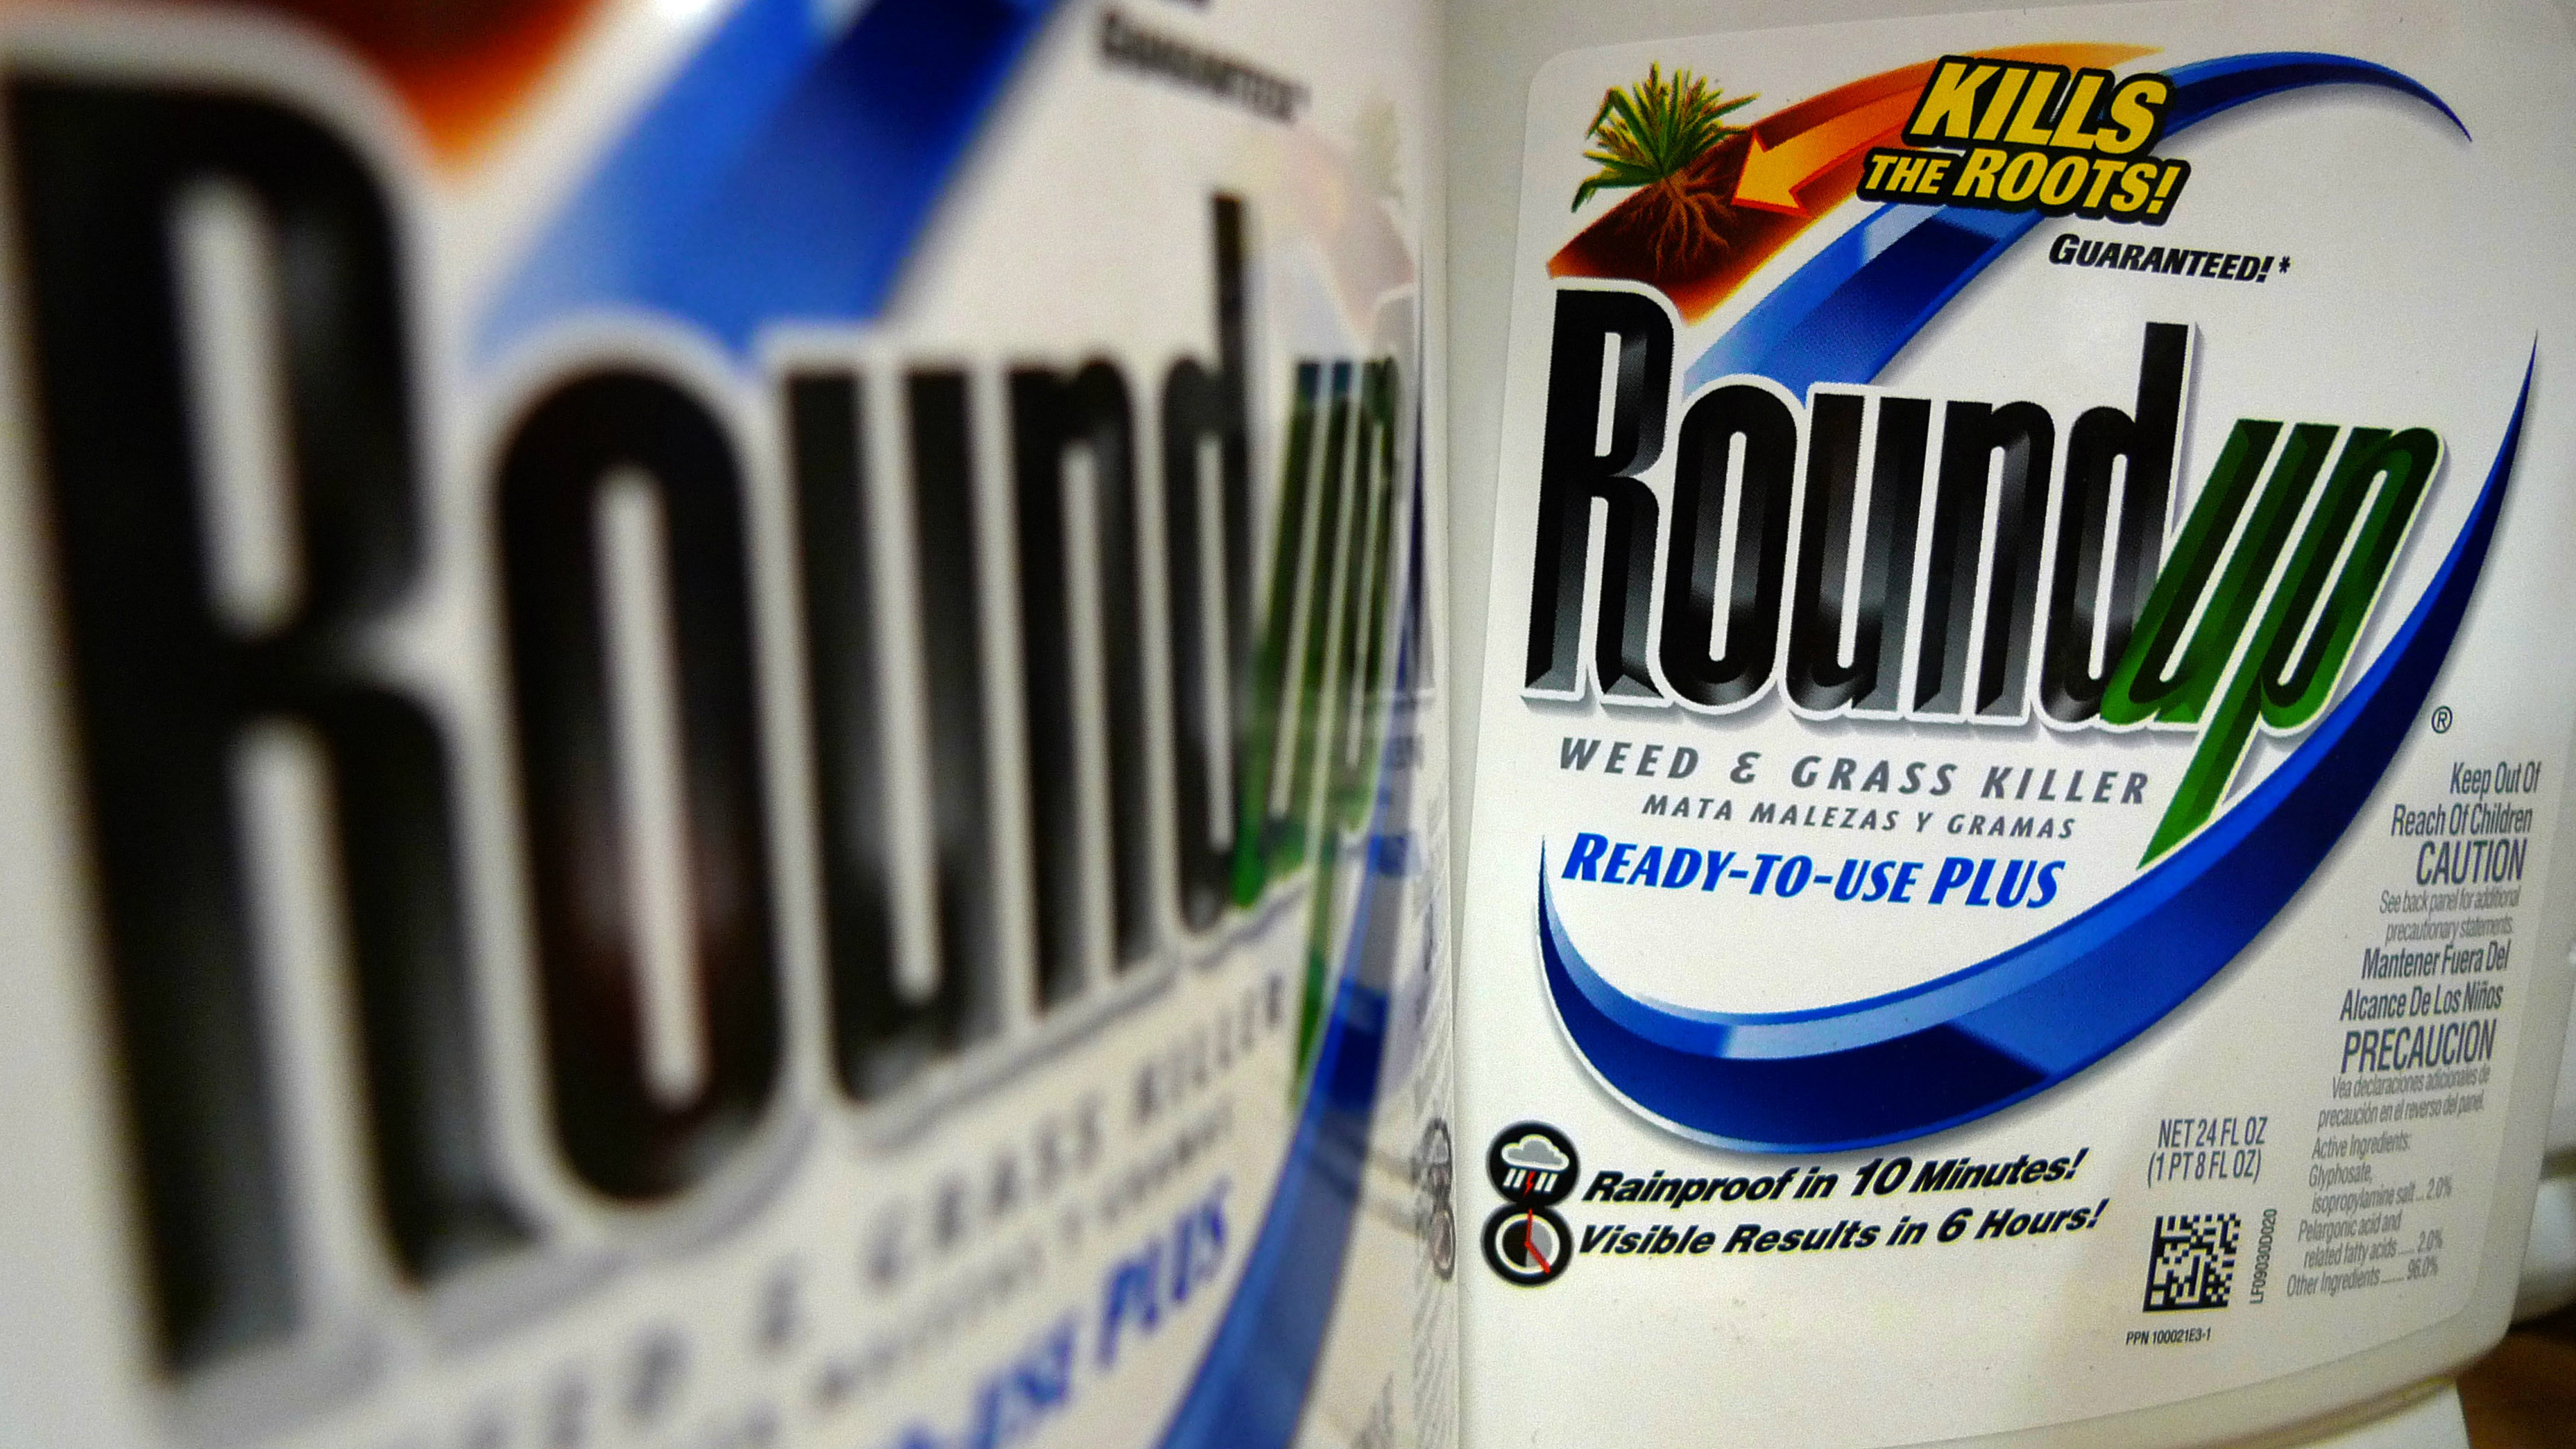 The FDA is finding traces of glyphosate in the food supply.